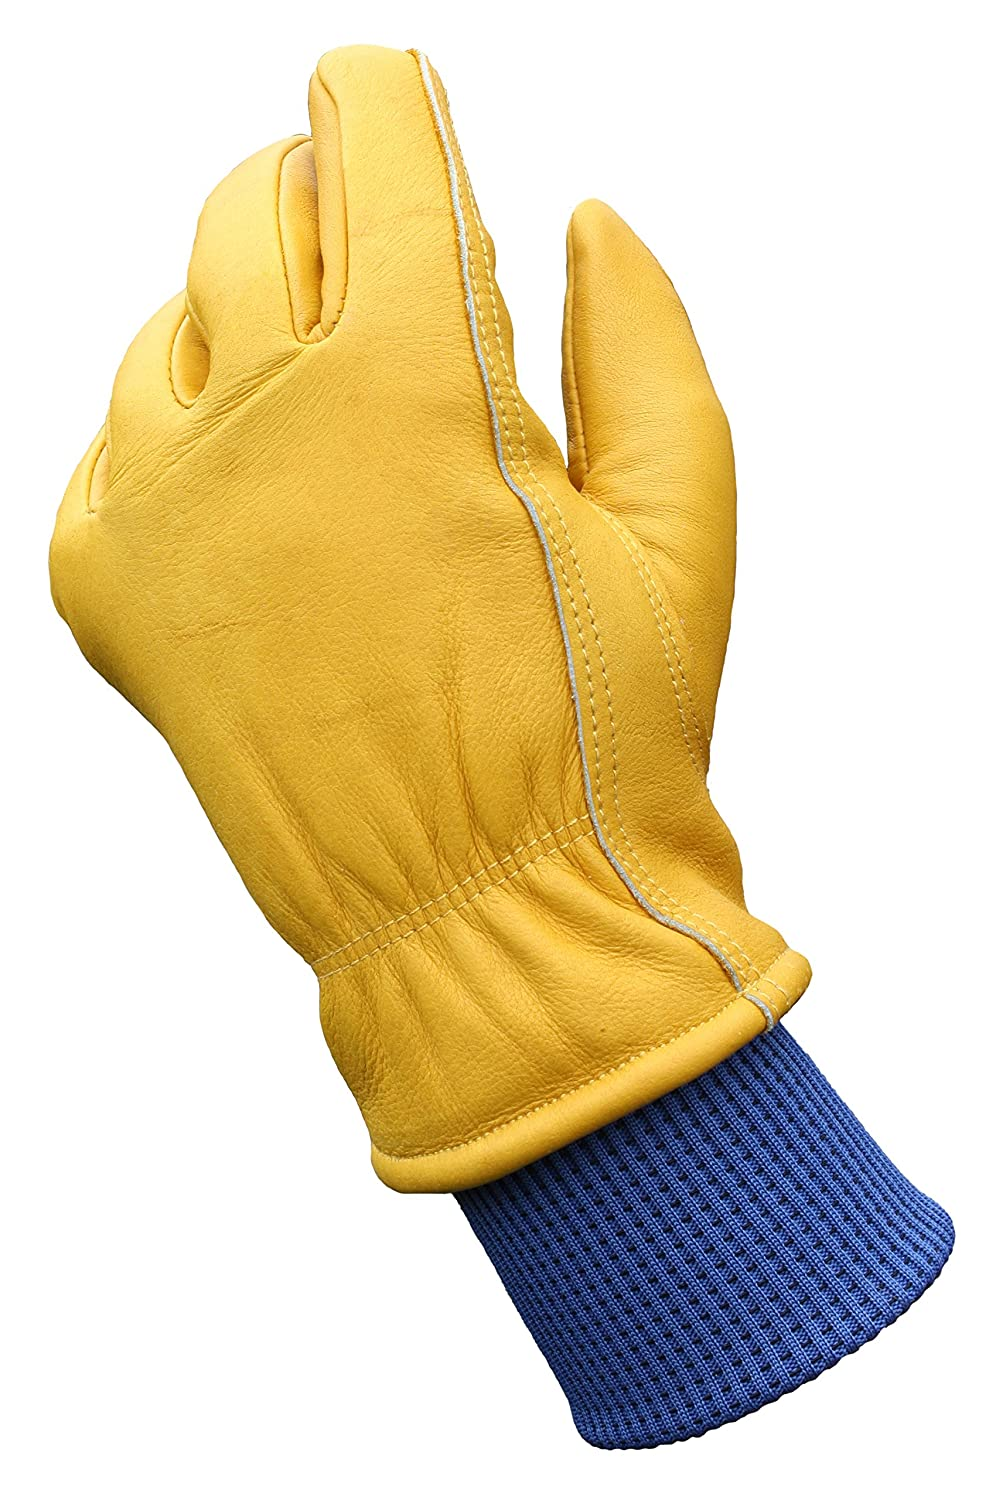 Water Resistant Very Warm Leather Work Gloves, Thinsulate